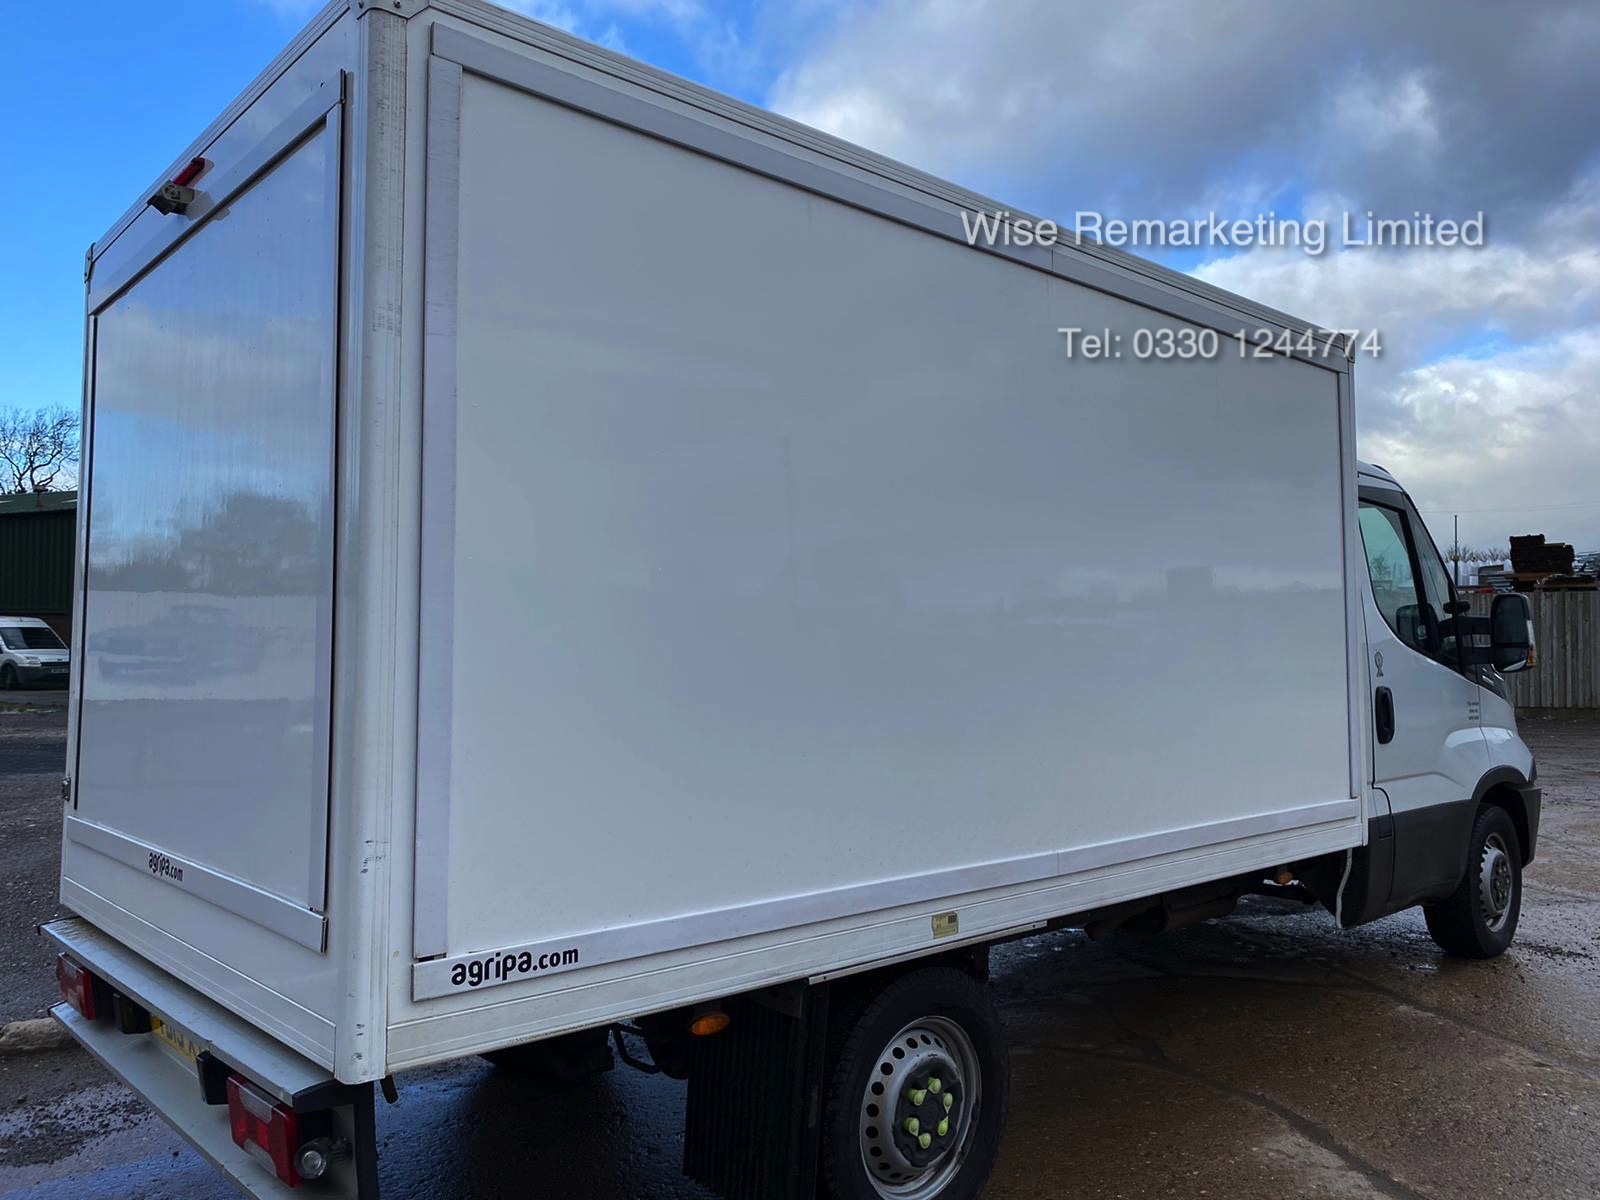 (RESERVE MET) Iveco Daily 35S11 2.3 TD Fridge/Freezer Box Van - 6 Speed - 2015 15 Reg - Image 3 of 17